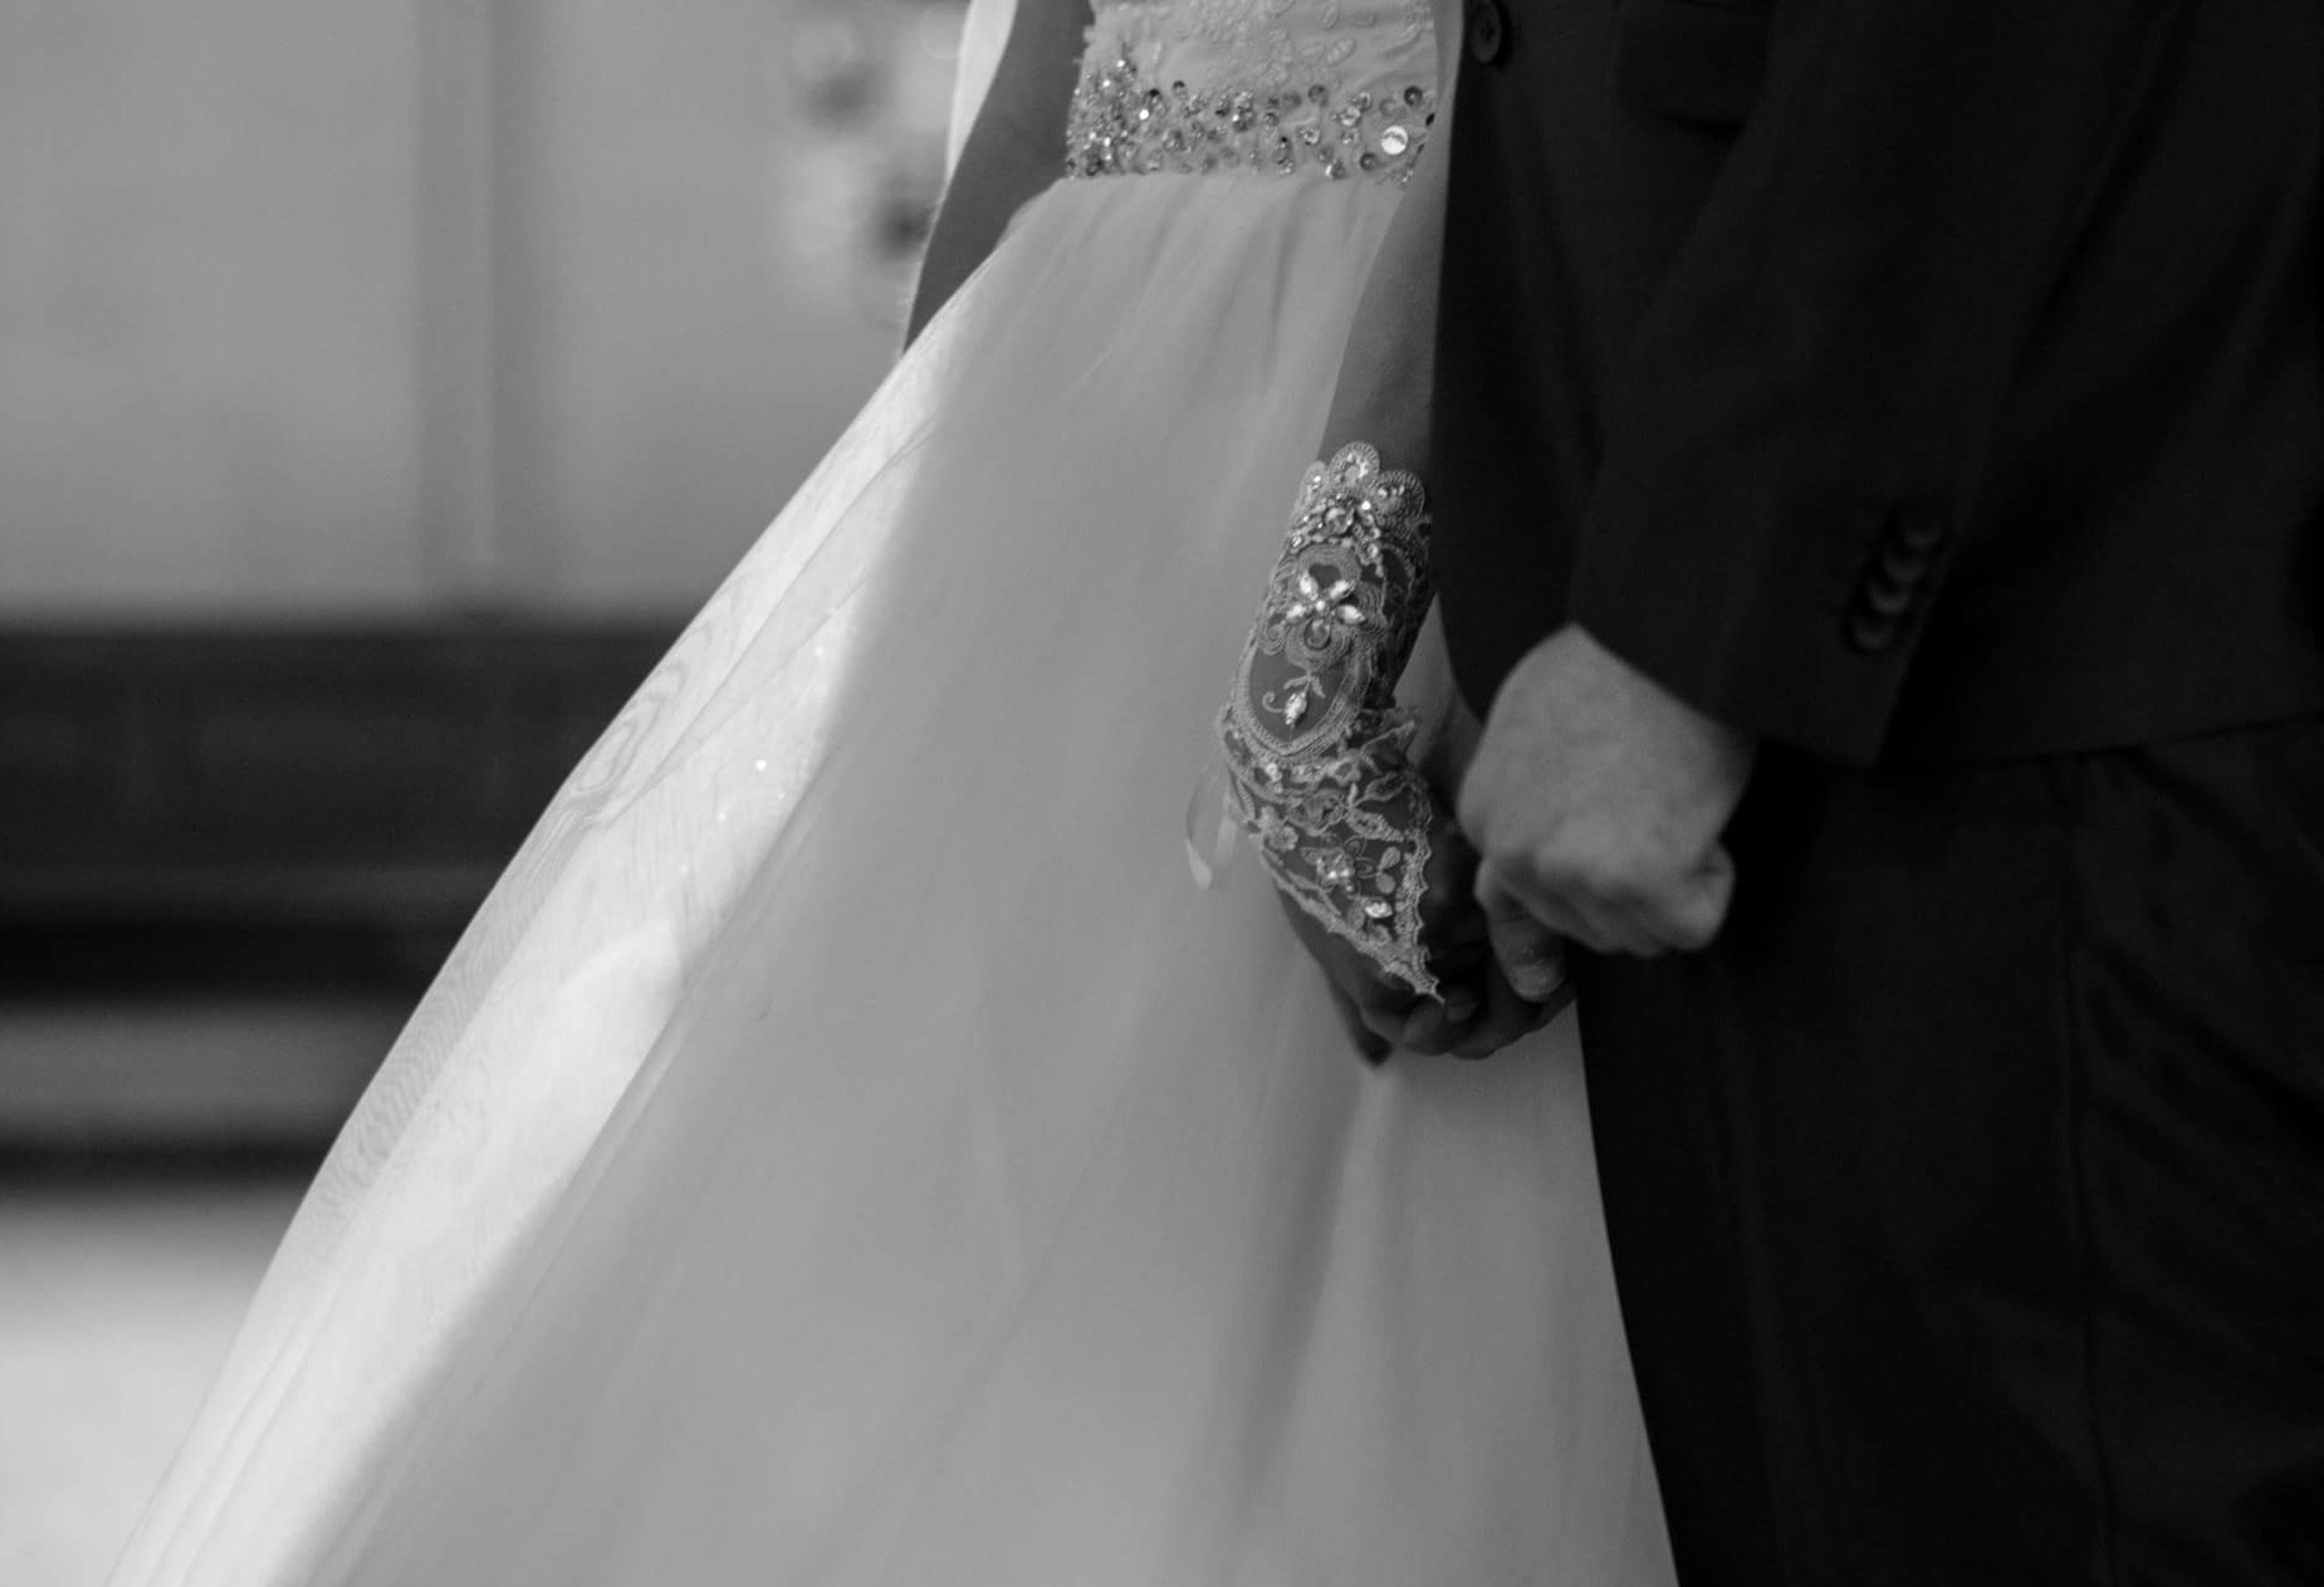 person, sitting, bride, wedding, midsection, jewelry, togetherness, couple - relationship, lifestyles, femininity, veil, holding, well-dressed